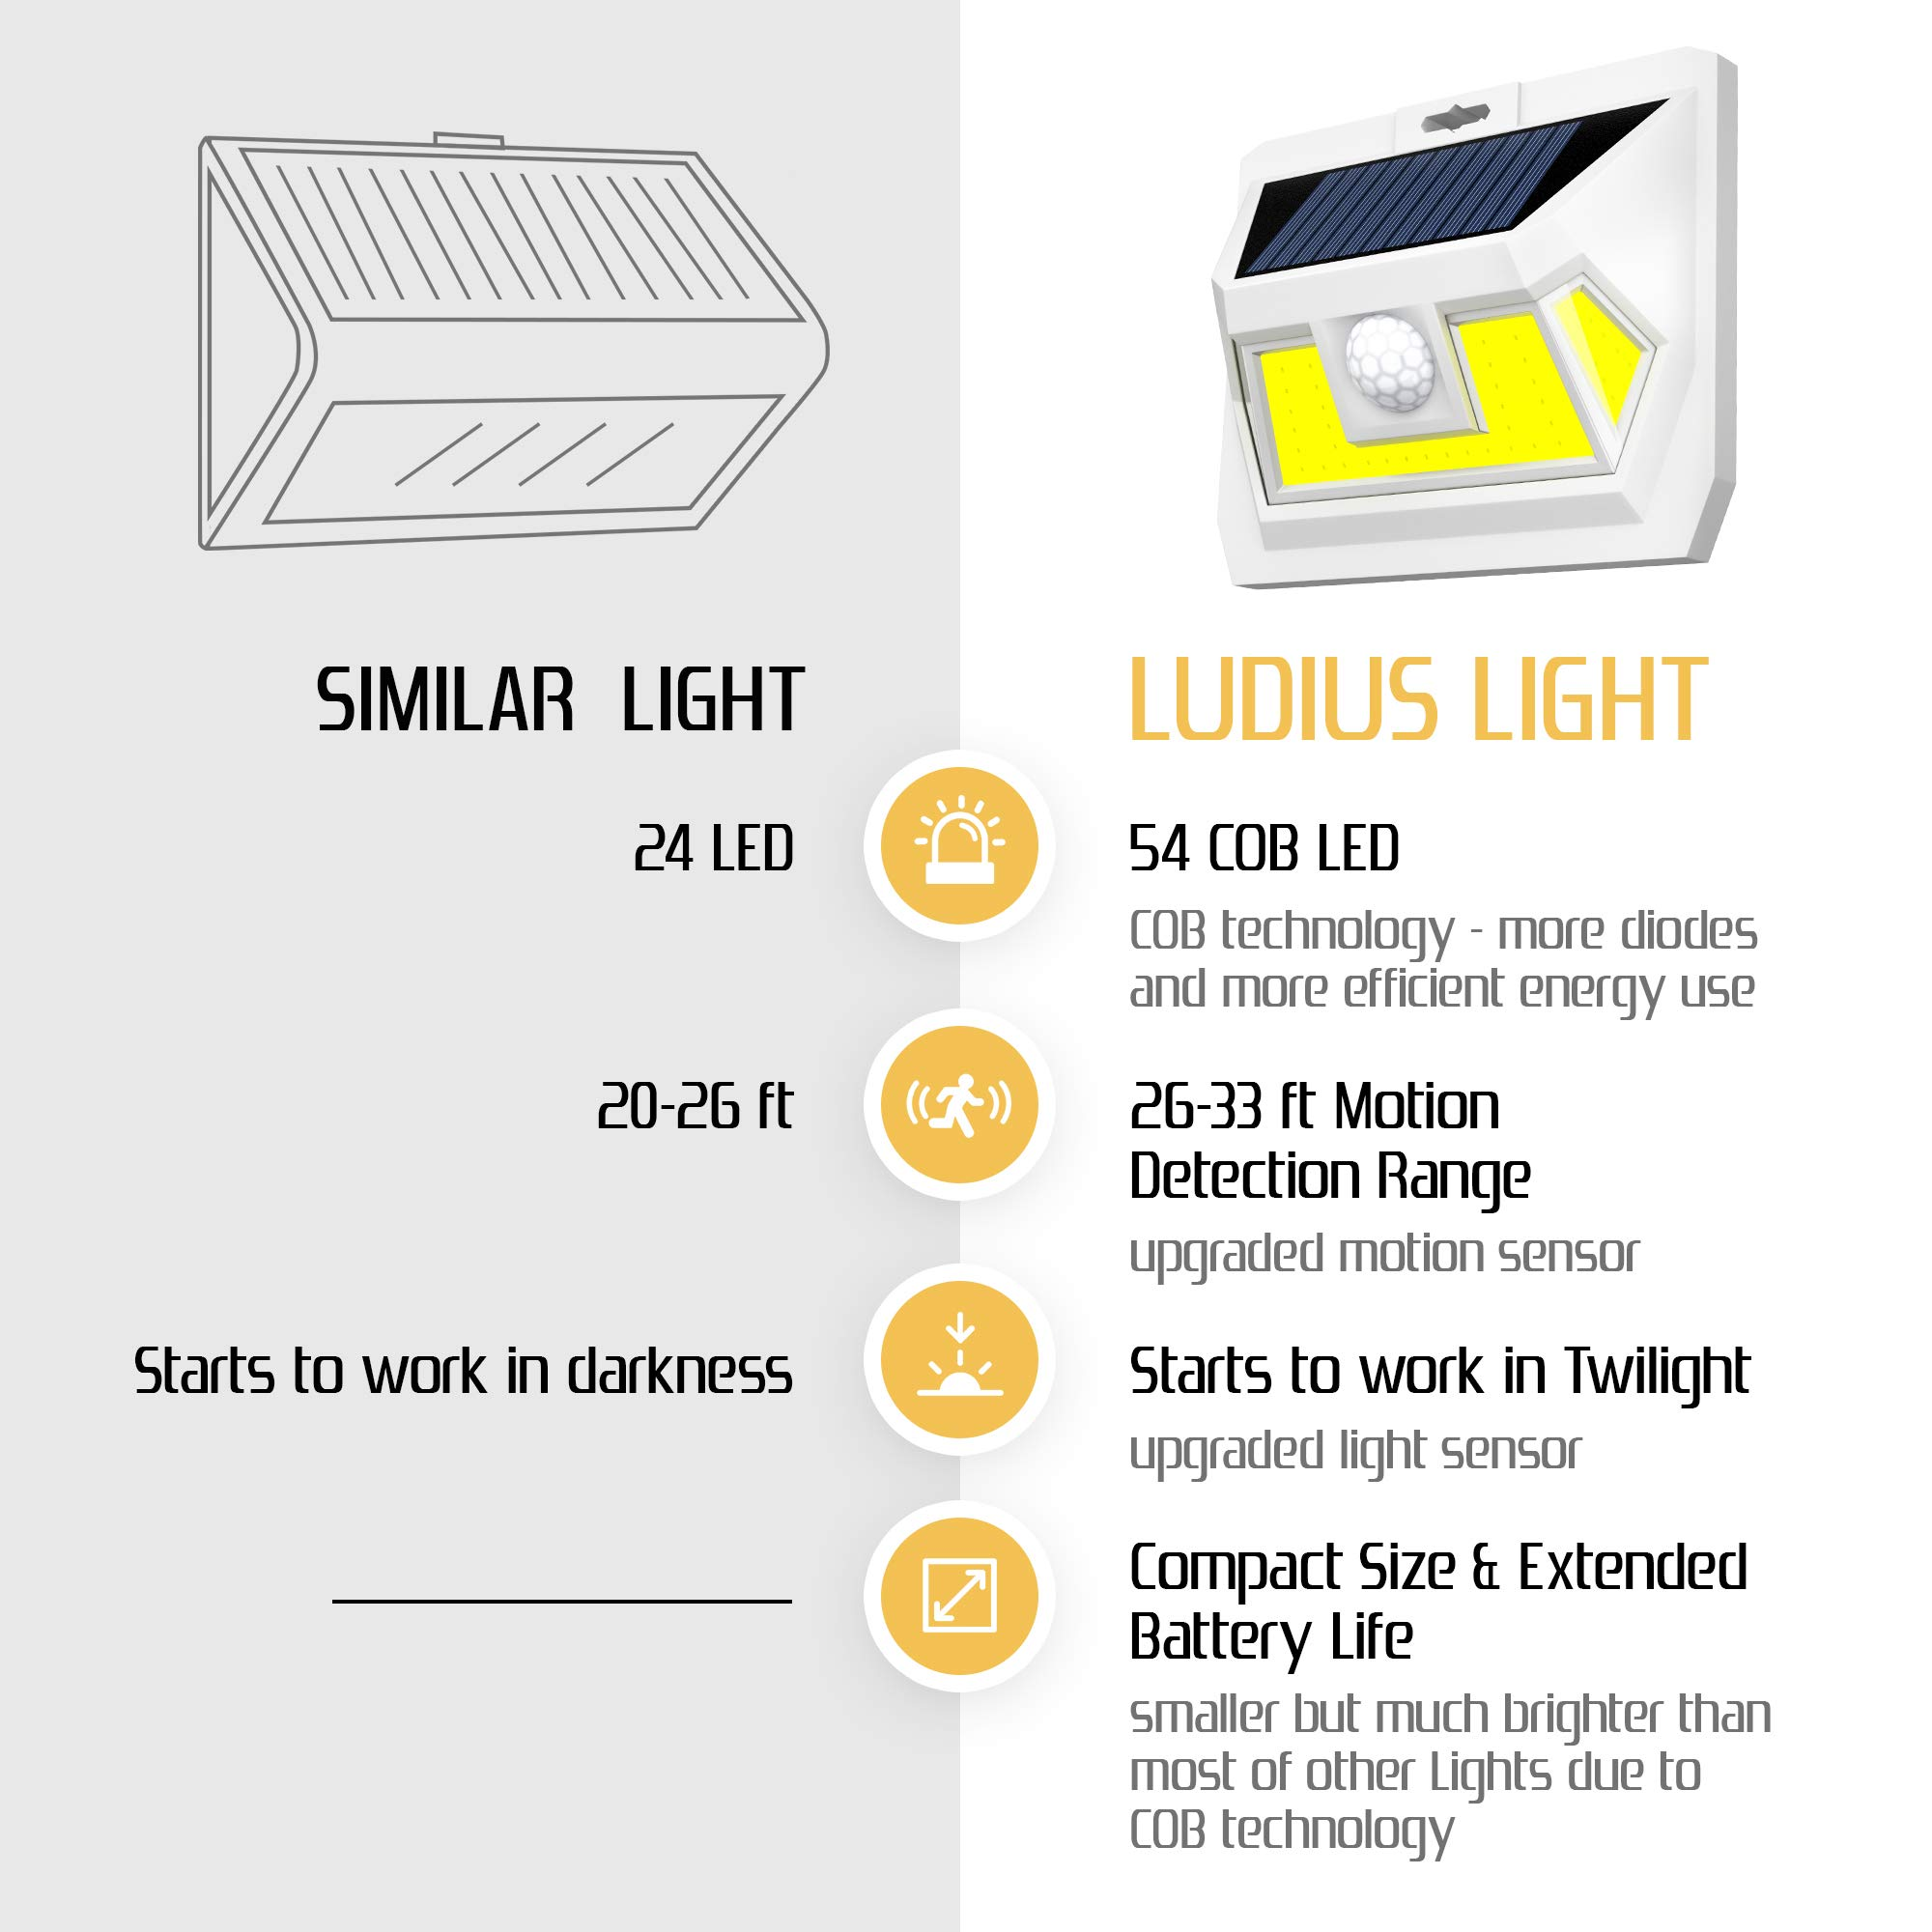 Ludius Solar Motion Sensor Light Outdoor-2 Generation Security Light-Upgraded Motion Detector-Very Bright-54 LEDs-270° Wide Light Angle-Waterproof-Wireless-Easy to Install Led Solar Lights Outdoor by Ludius